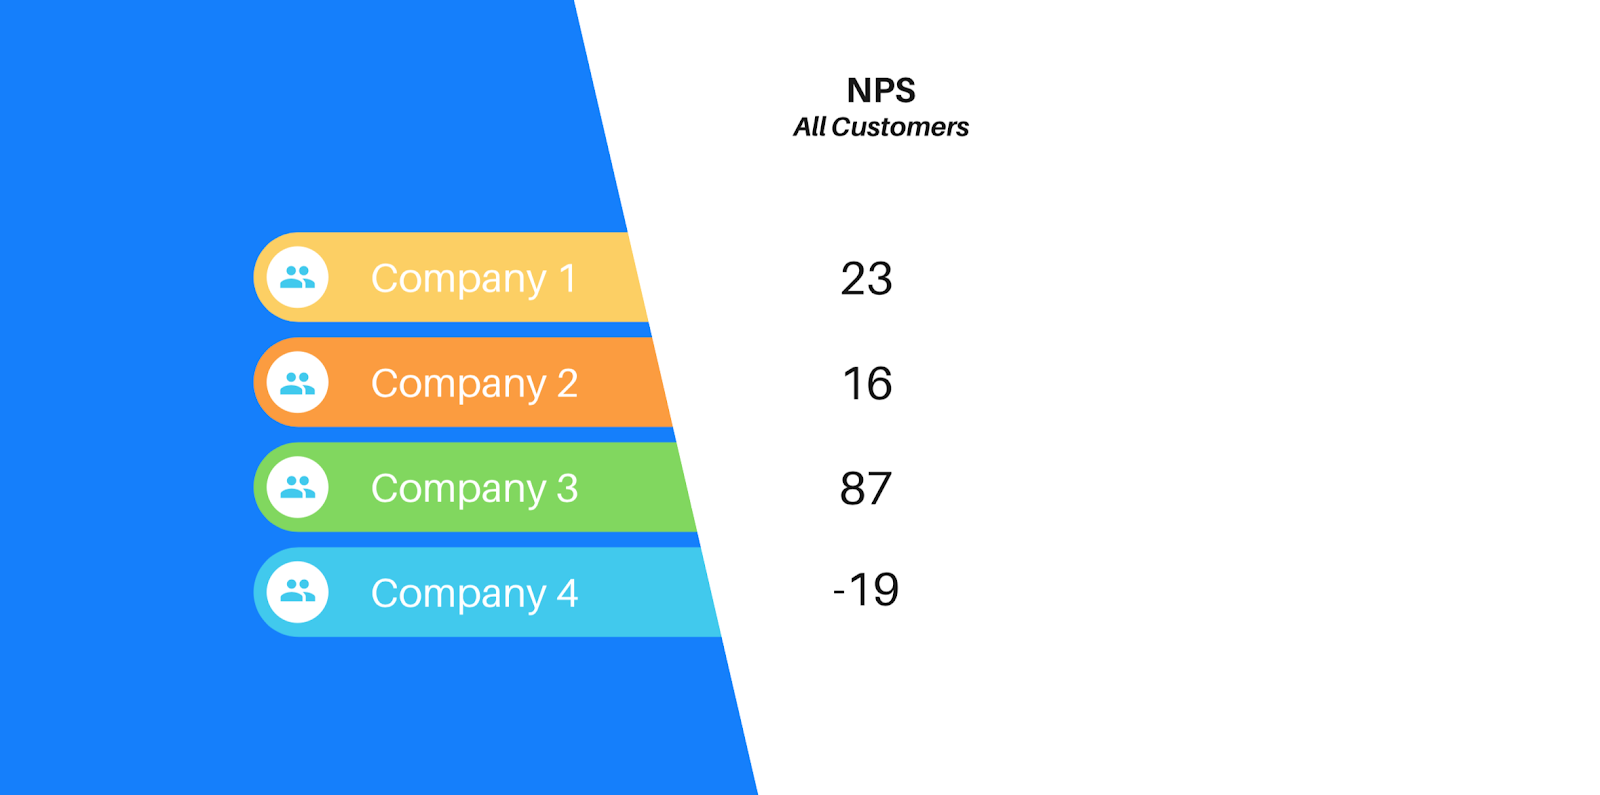 NPS scores of 4 anonymous businesses